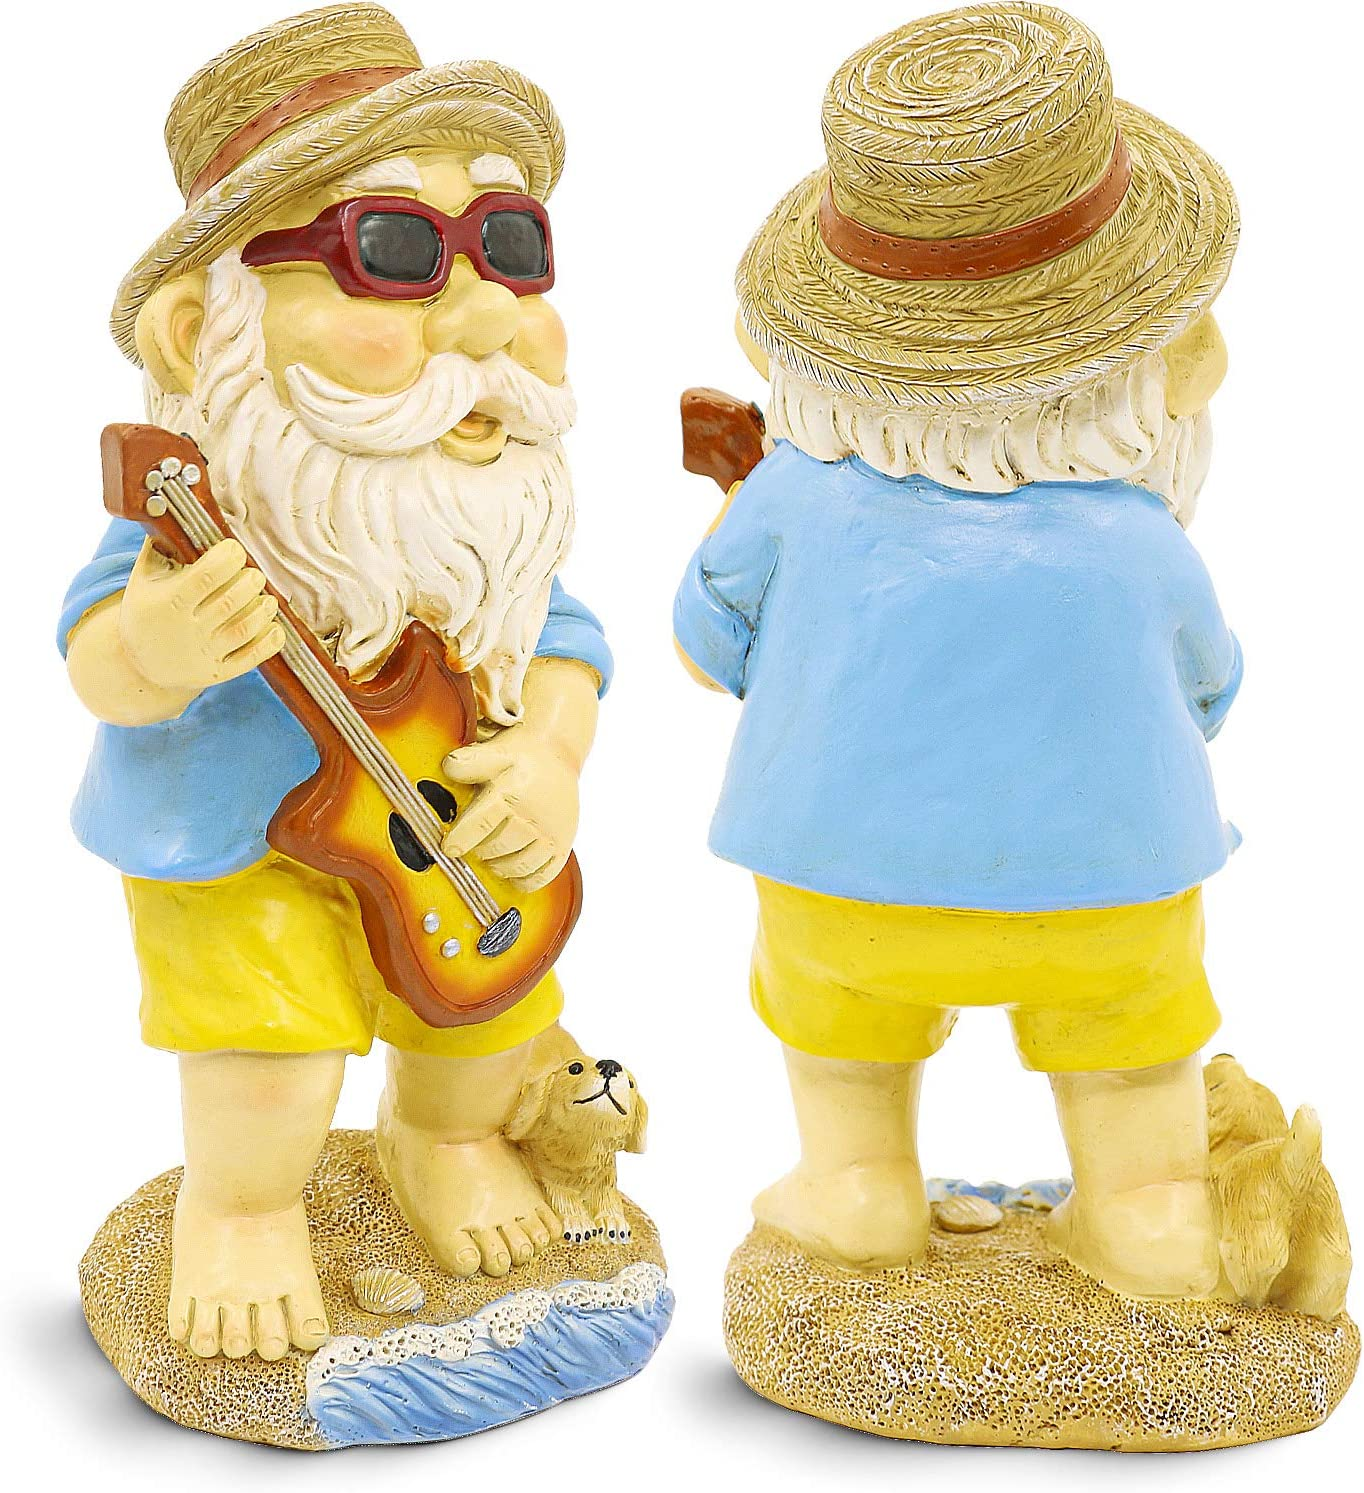 Garden Gnome Statue with Guitar and Puppy, Polyresin Garden Sculpture Outdoor/Indoor Decor, Funny Lawn Figurine, Colorful Outside Art Decorations for Yard, Balcony, Porch, Patio, Home